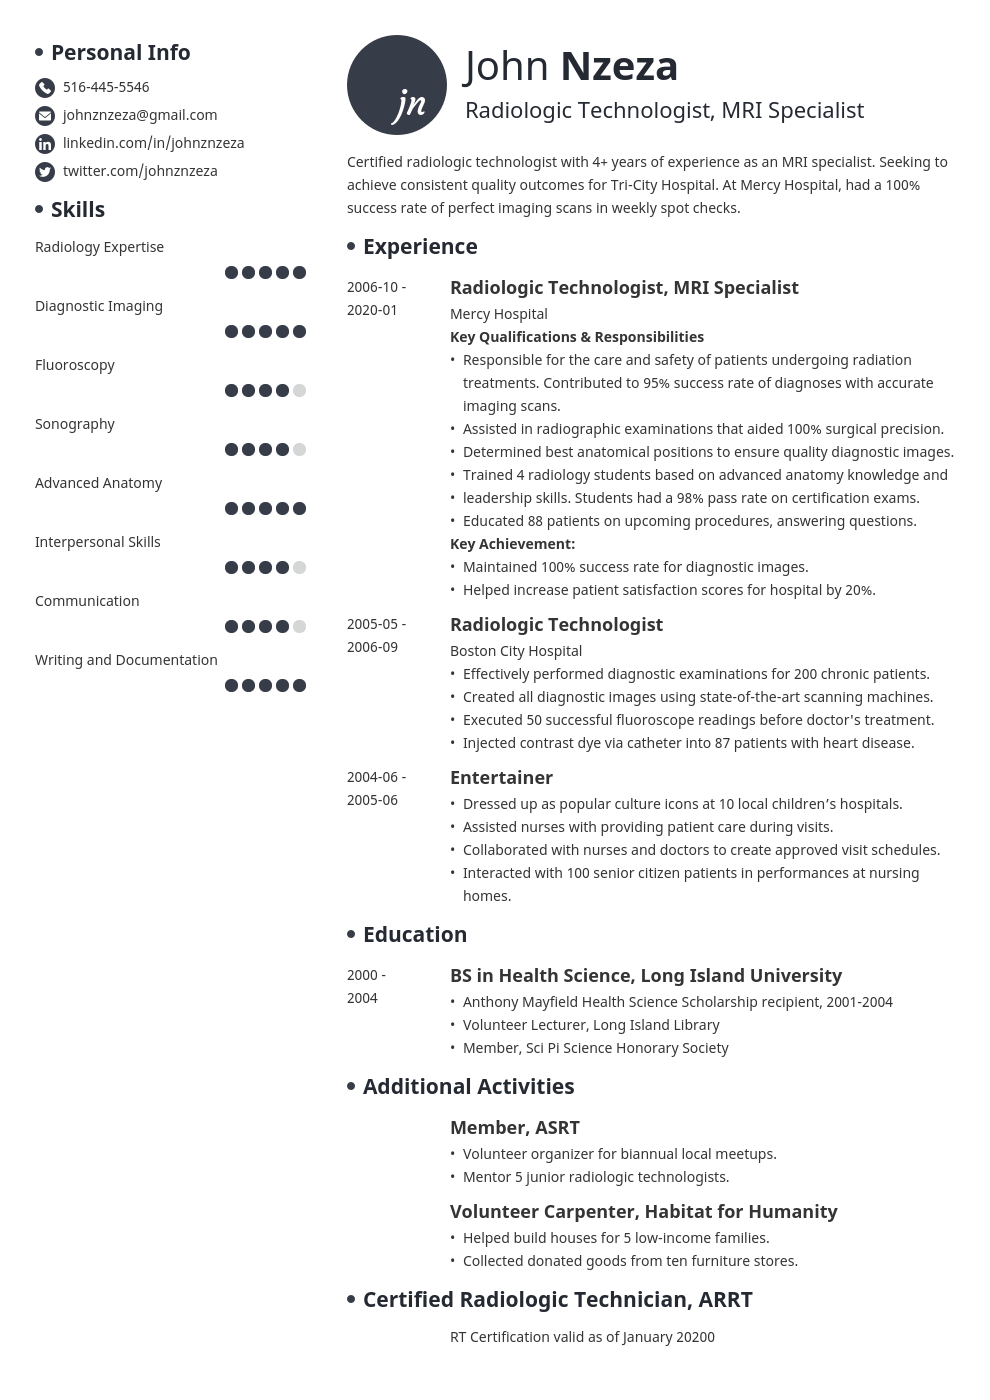 Radiologic Technologist Resume Example Template Initials Resume Examples Student Resume Job Resume Examples